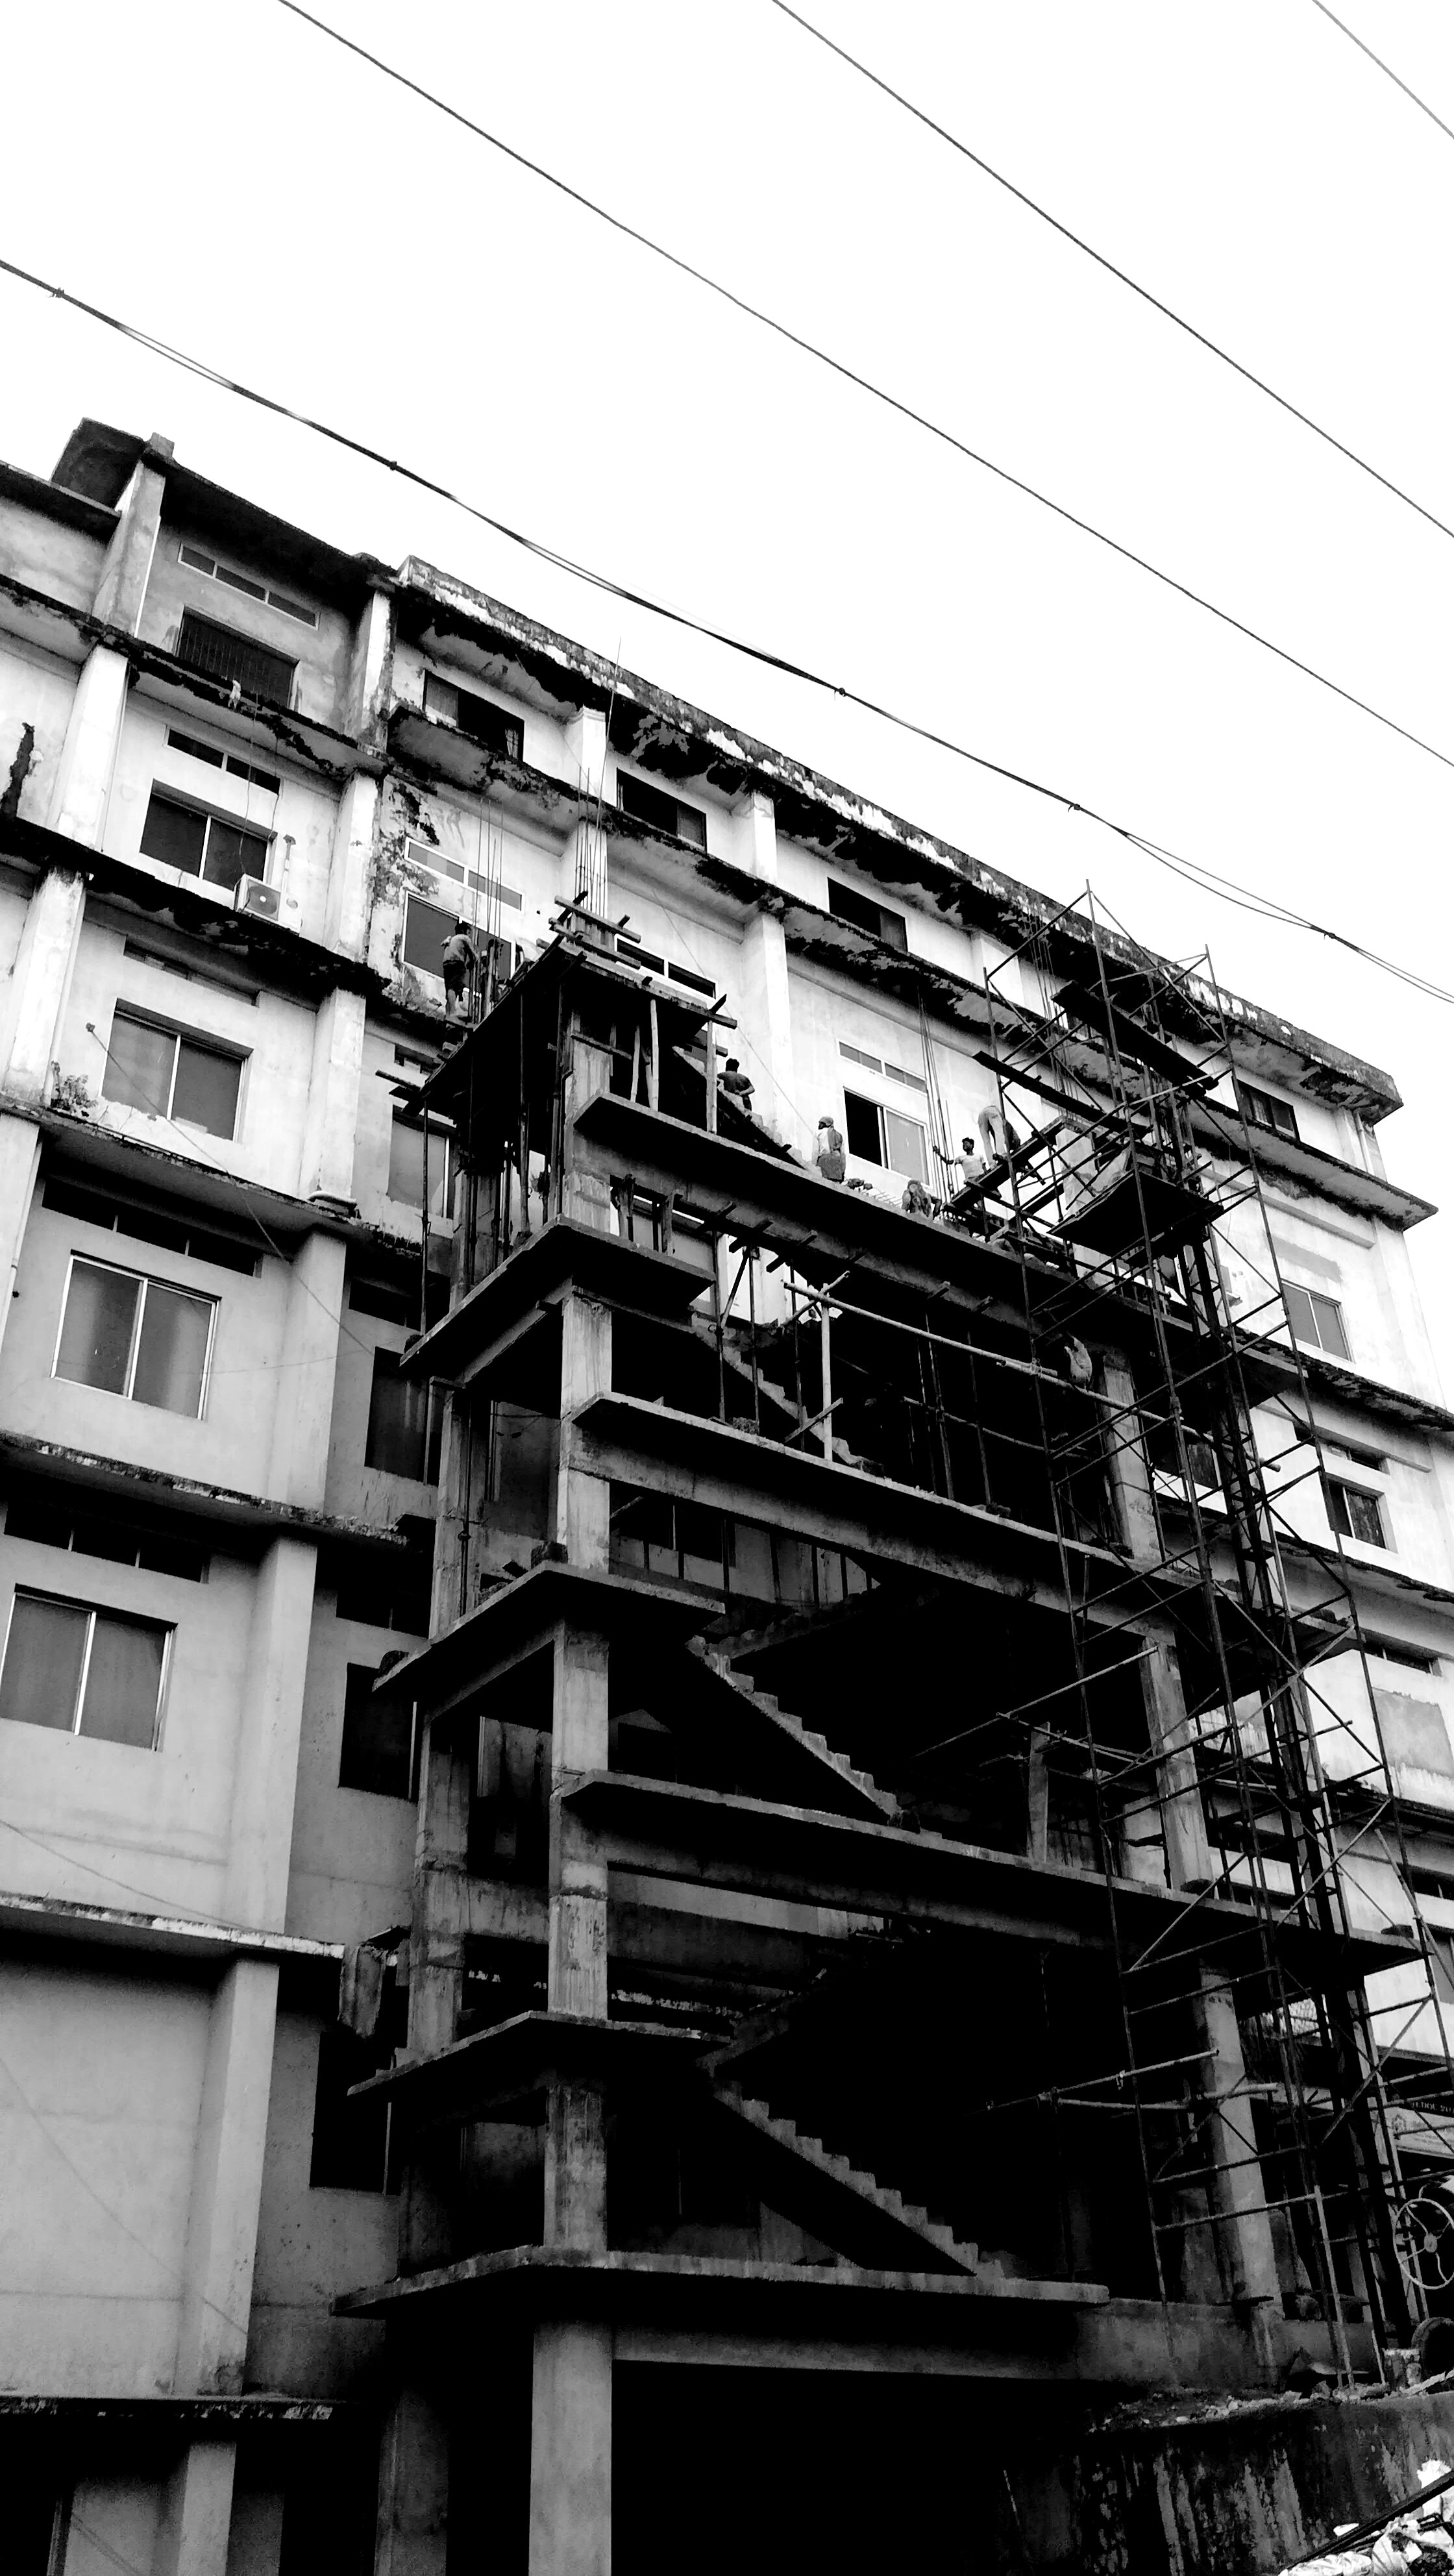 Black and white photo of apartment building with fire escape and stairs